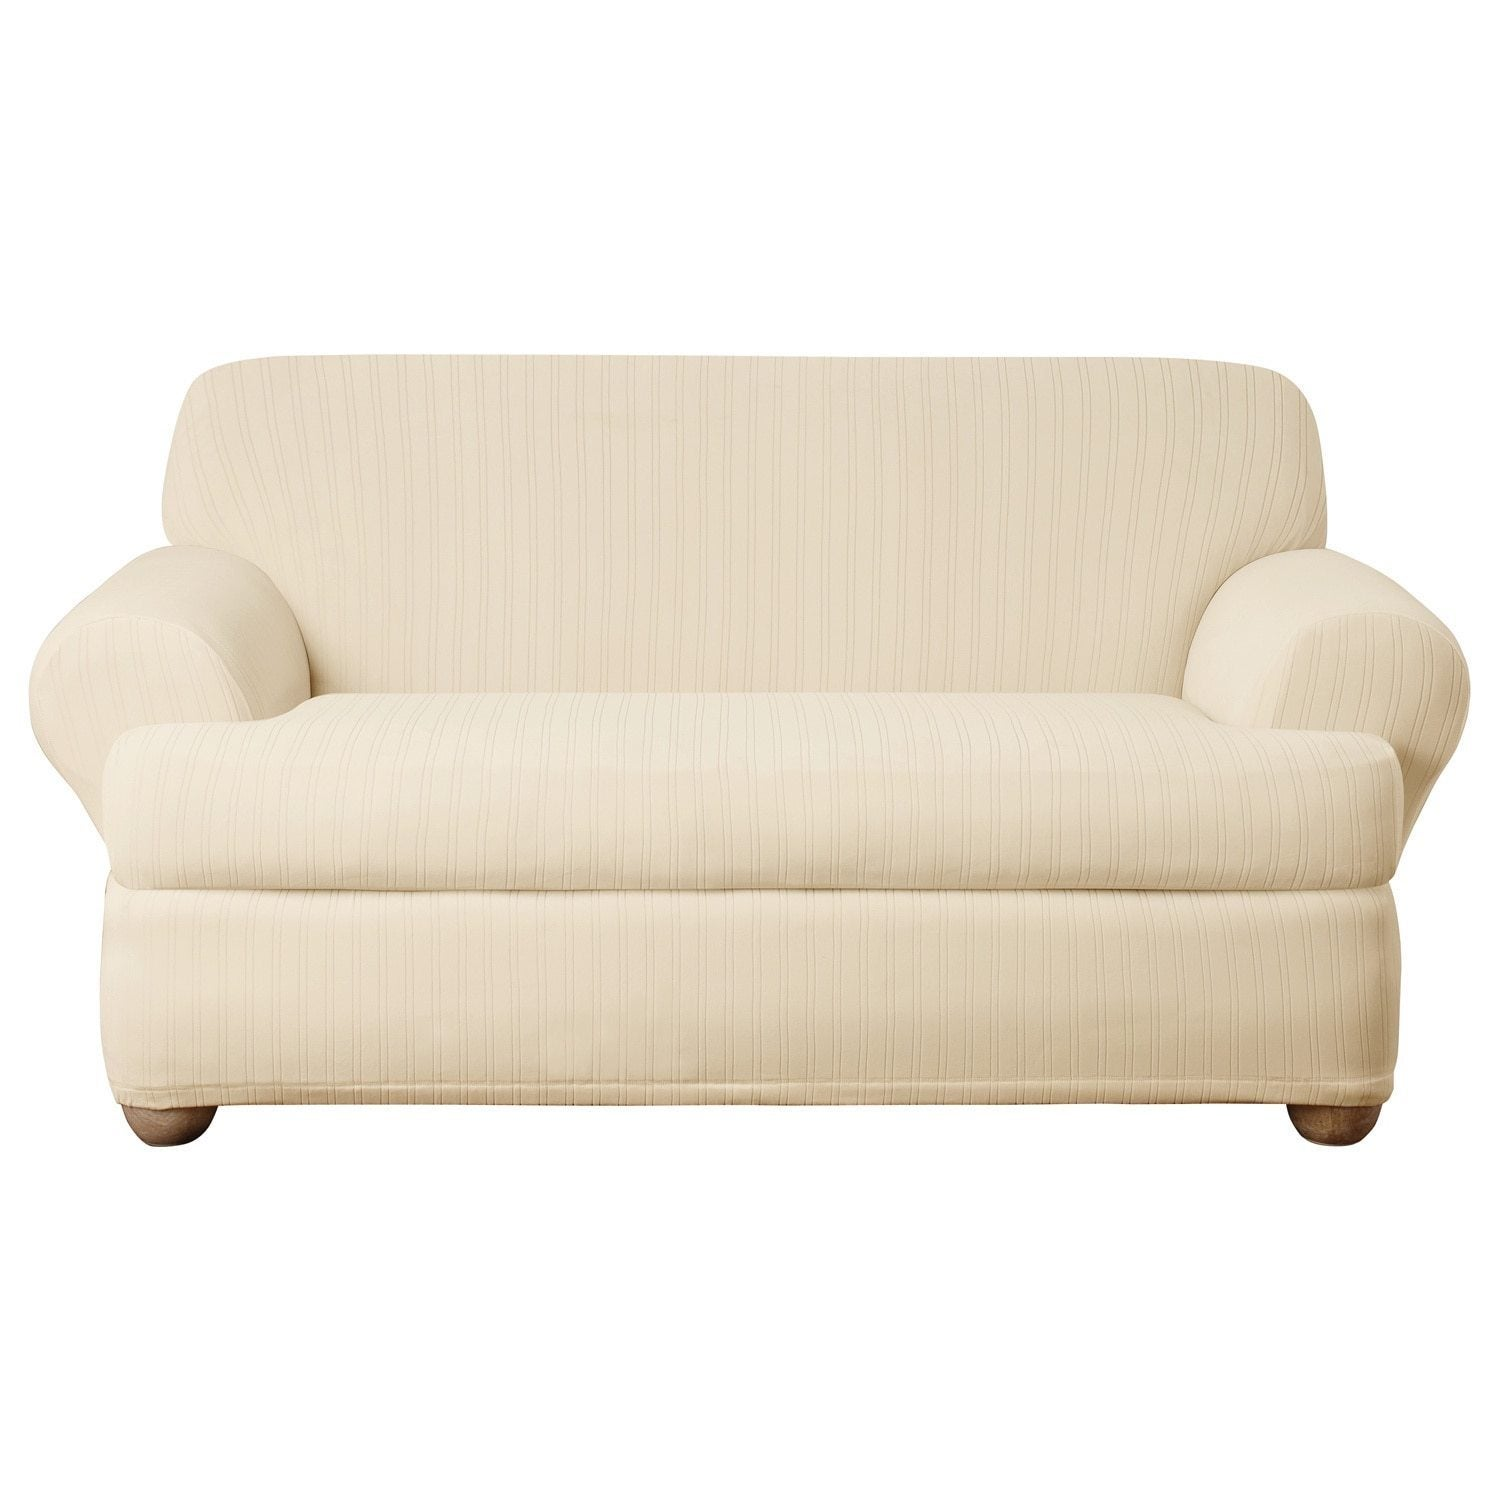 loveseat for slip two nice enchanting glamorous ribbon slipcovers sofa cushion covers slipcover white couch t disheveled decals idea with cotton texture sofas seater duck